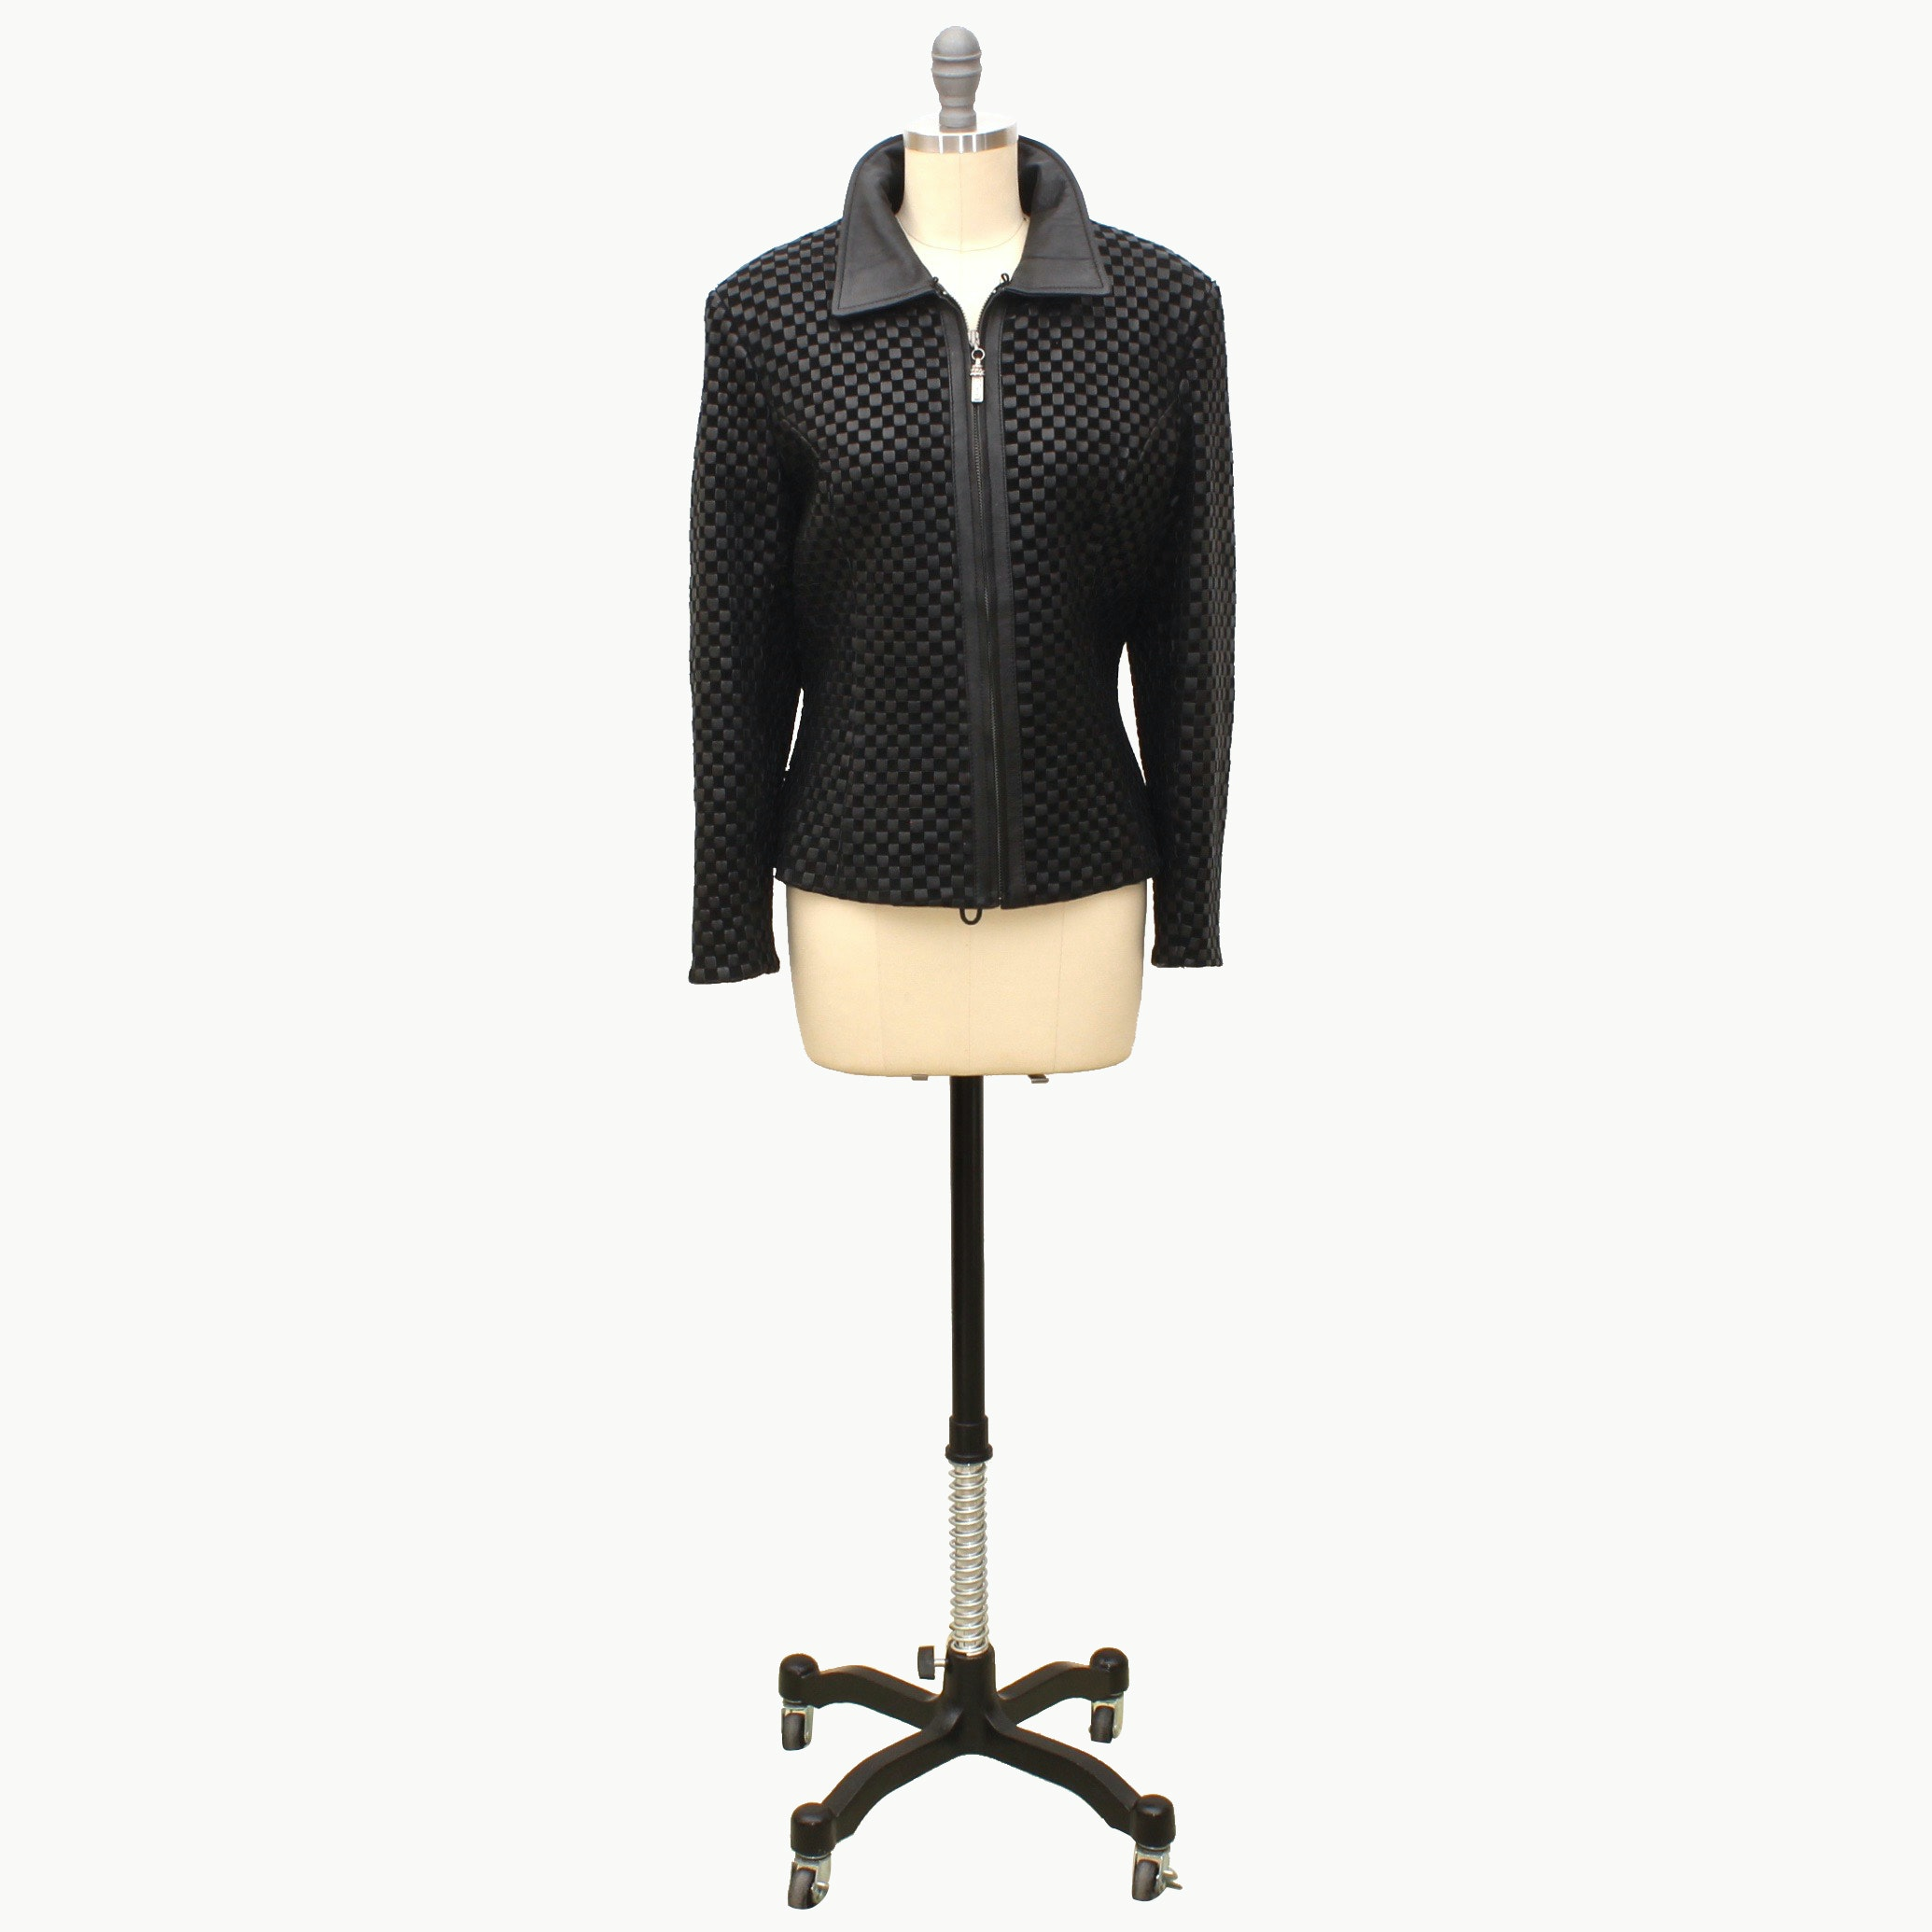 St. John Women's Black Leather Zipper-Front Jacket